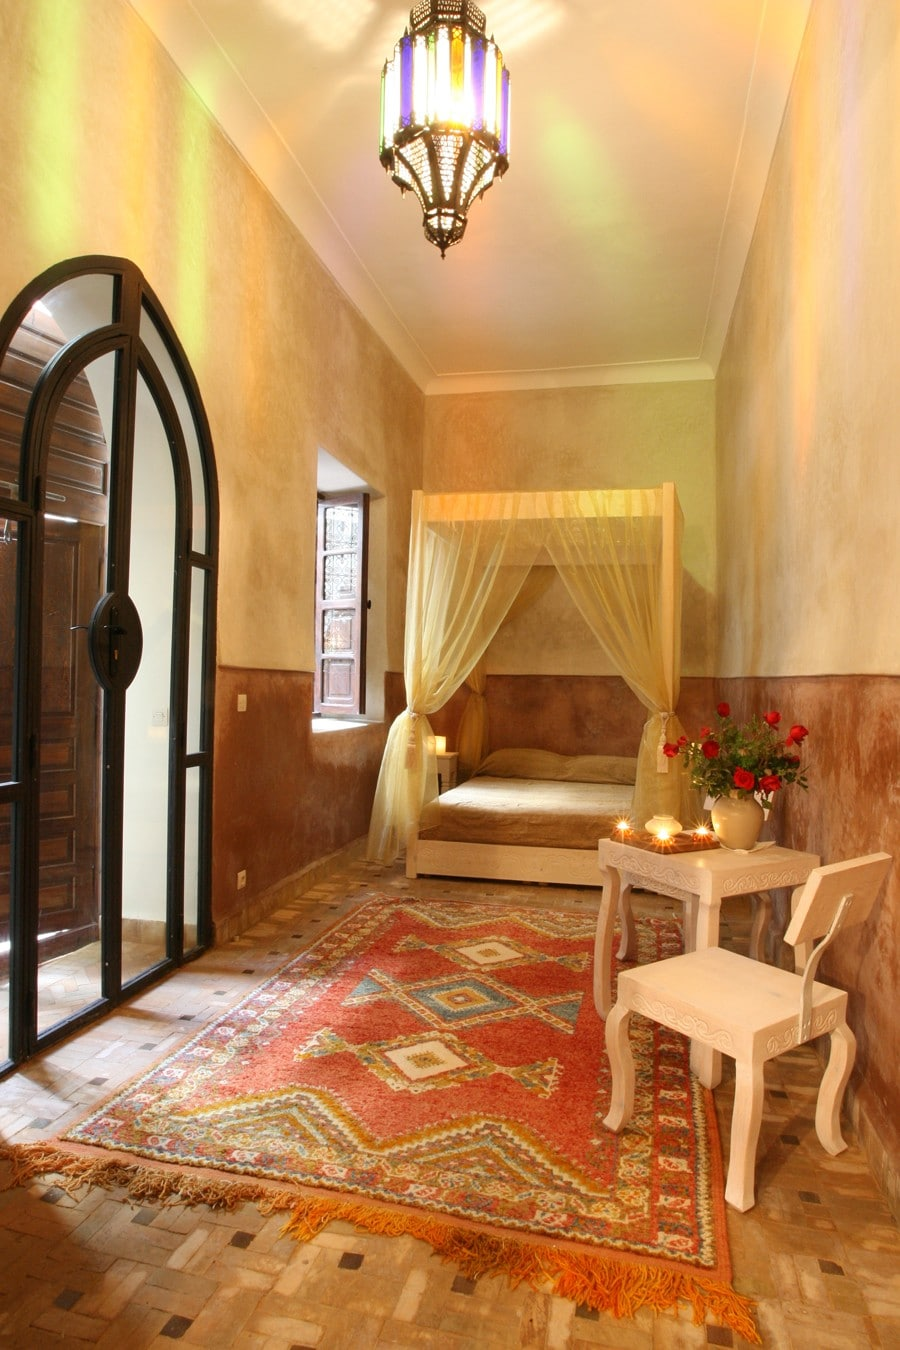 DOUBLE ROOM RIAD MARRAKECH